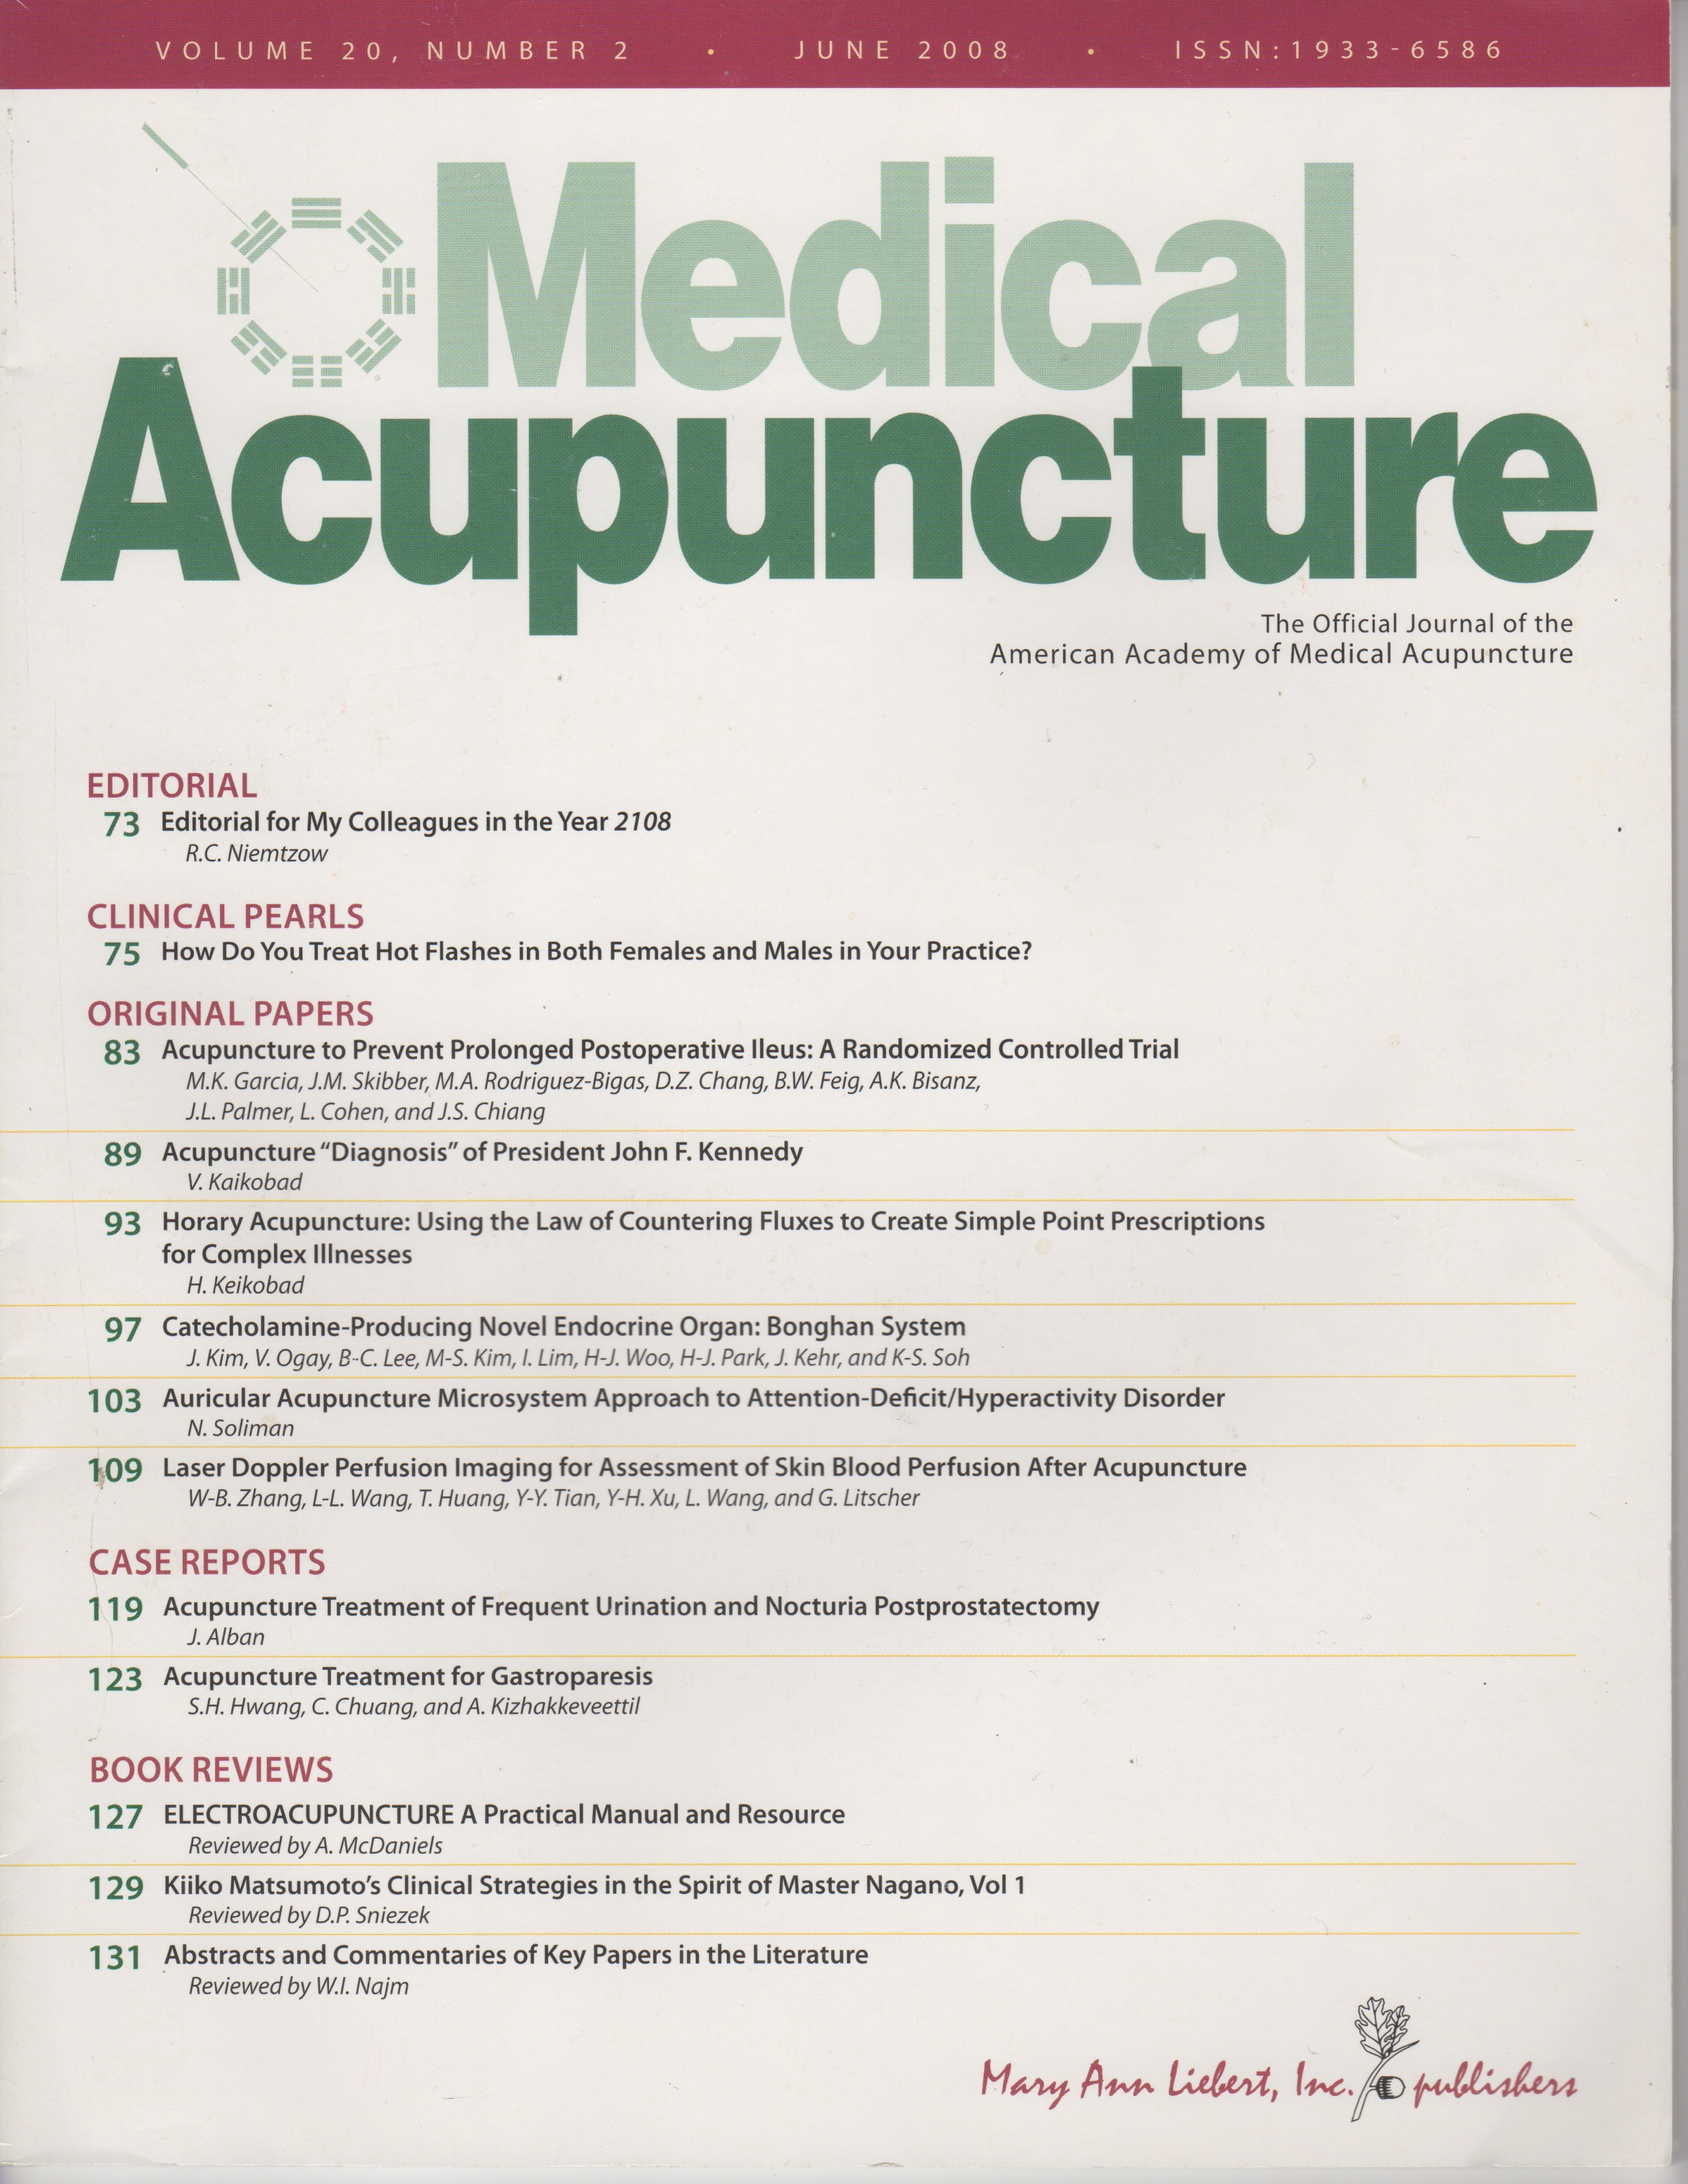 Acupuncture for Treatment of Frequent Urination Post Prostate Surgery